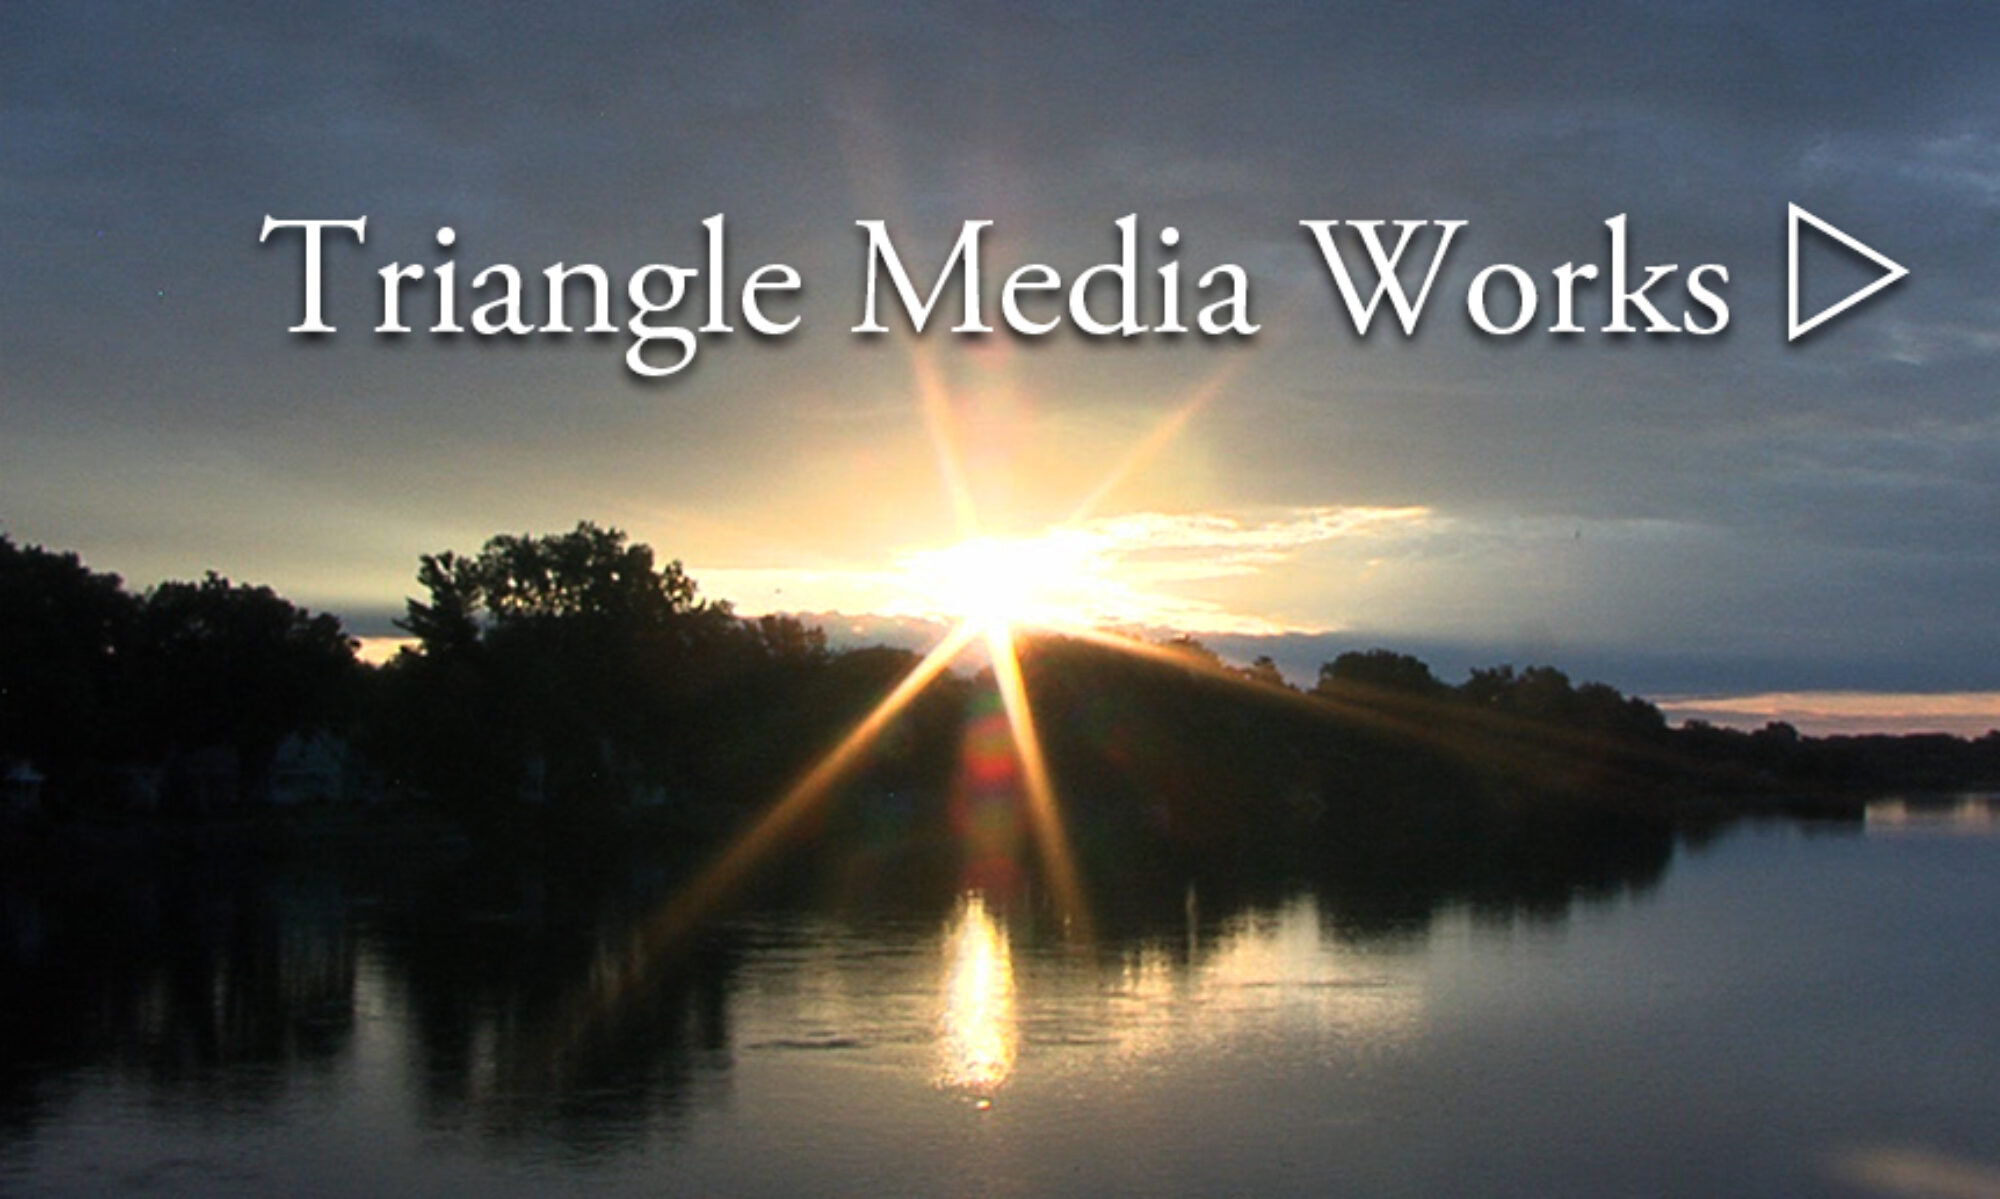 Triangle Media Works, LLC